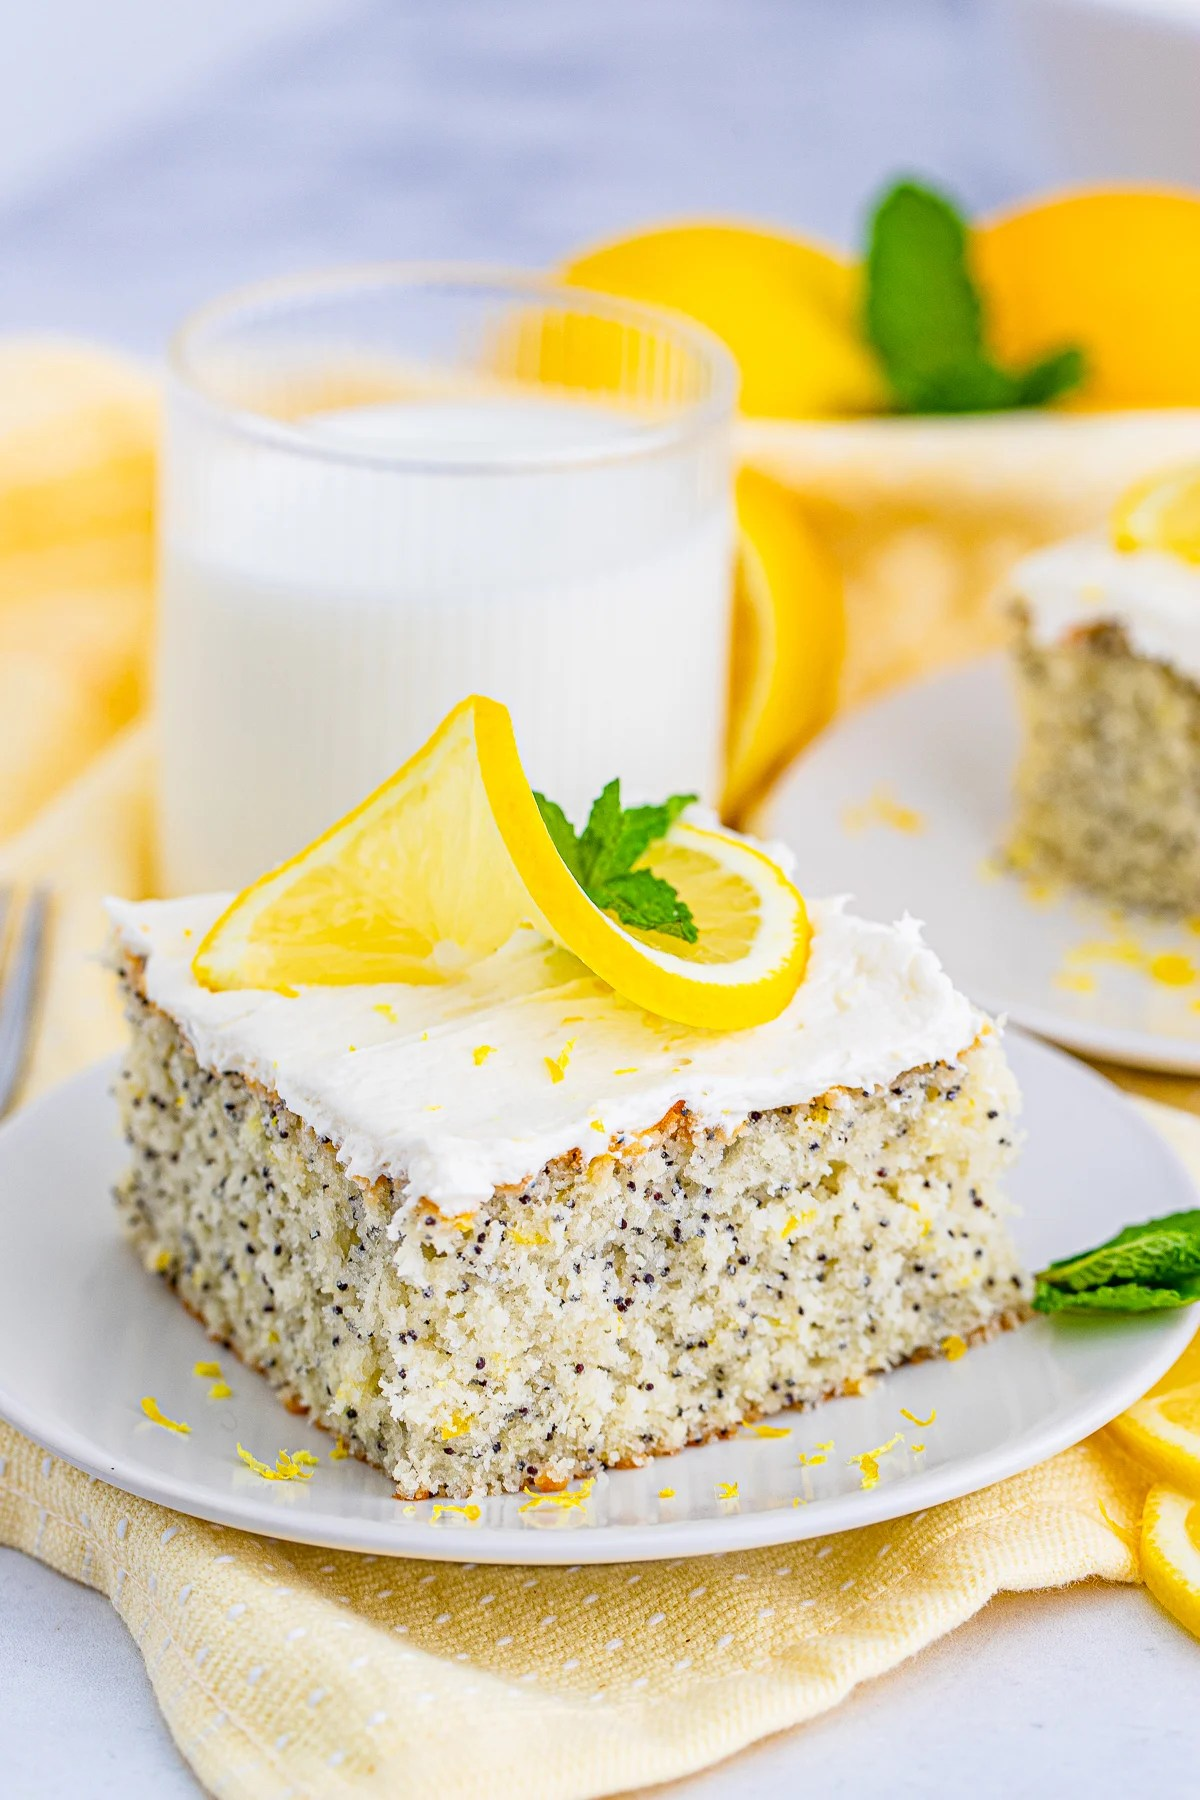 Lemon Poppy Seed Cake slice on white plate topped with lemon and mint